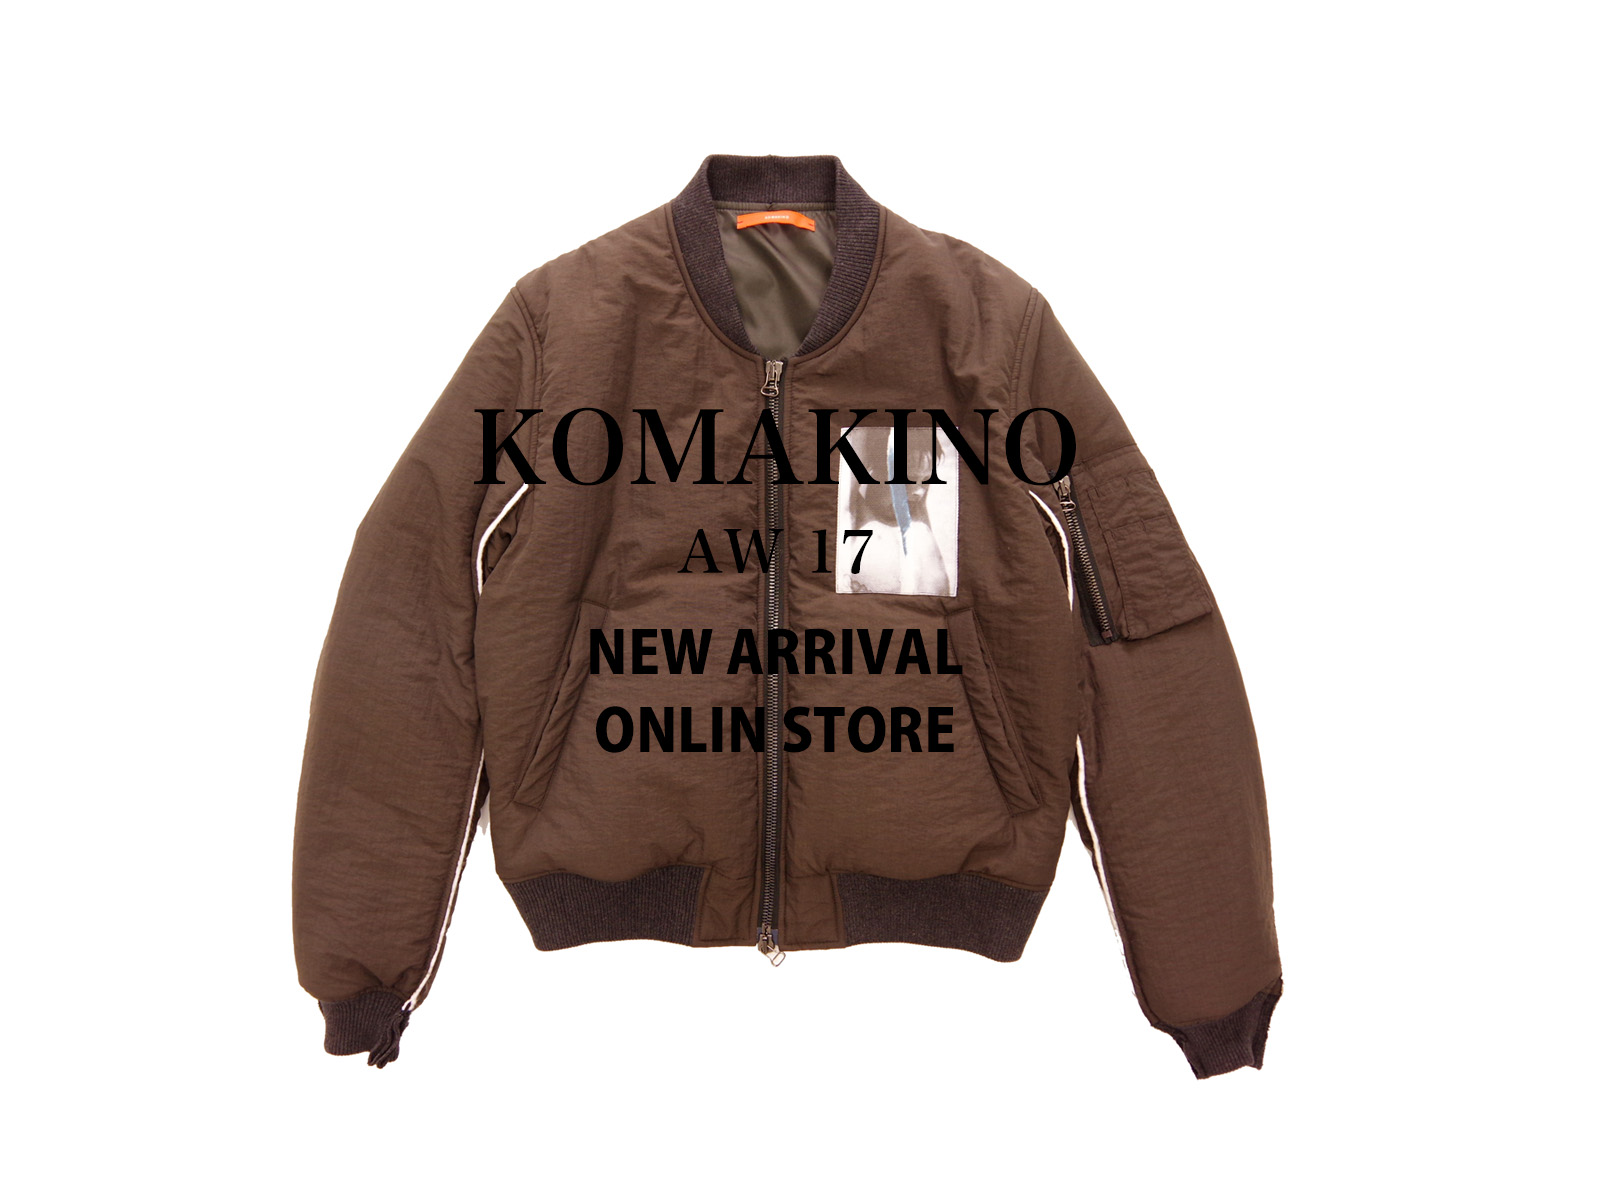 KOMAKINO AW17 NEW ARRIVAL ONLINE STORE